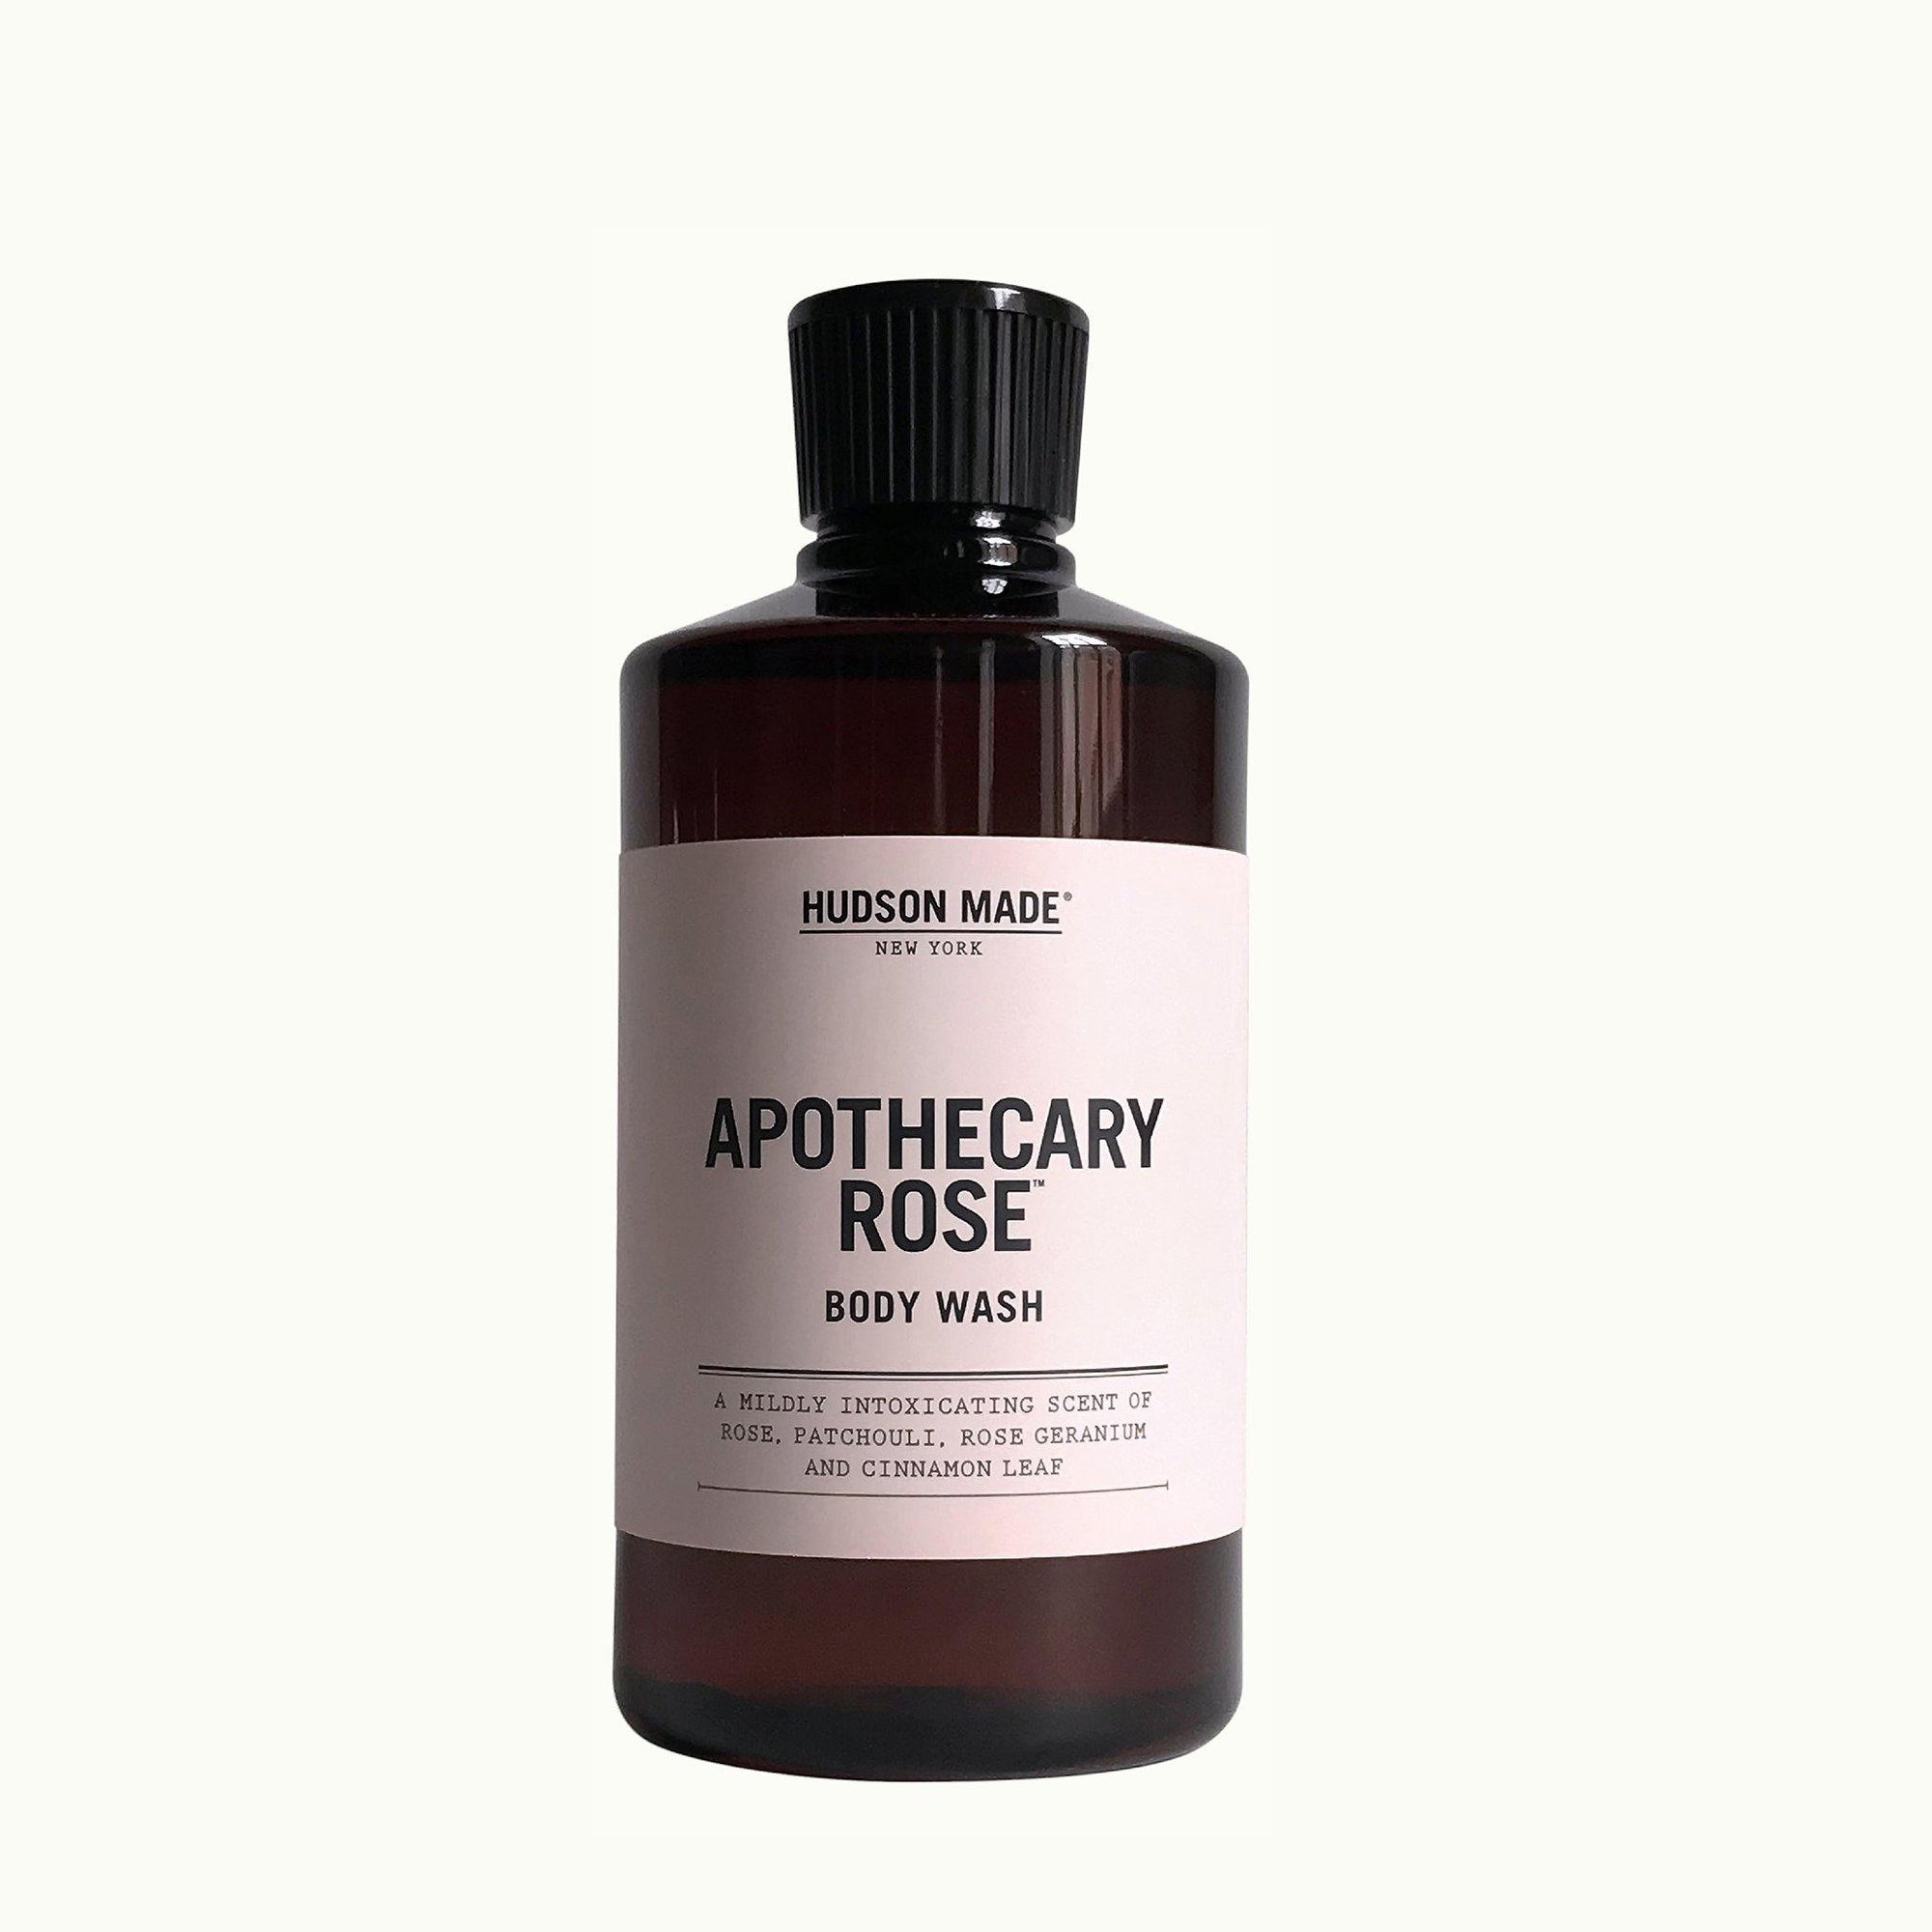 A brown bottle with screw off cap with a light pink label that reads Hudson Made Apothecary Rose Body Wash